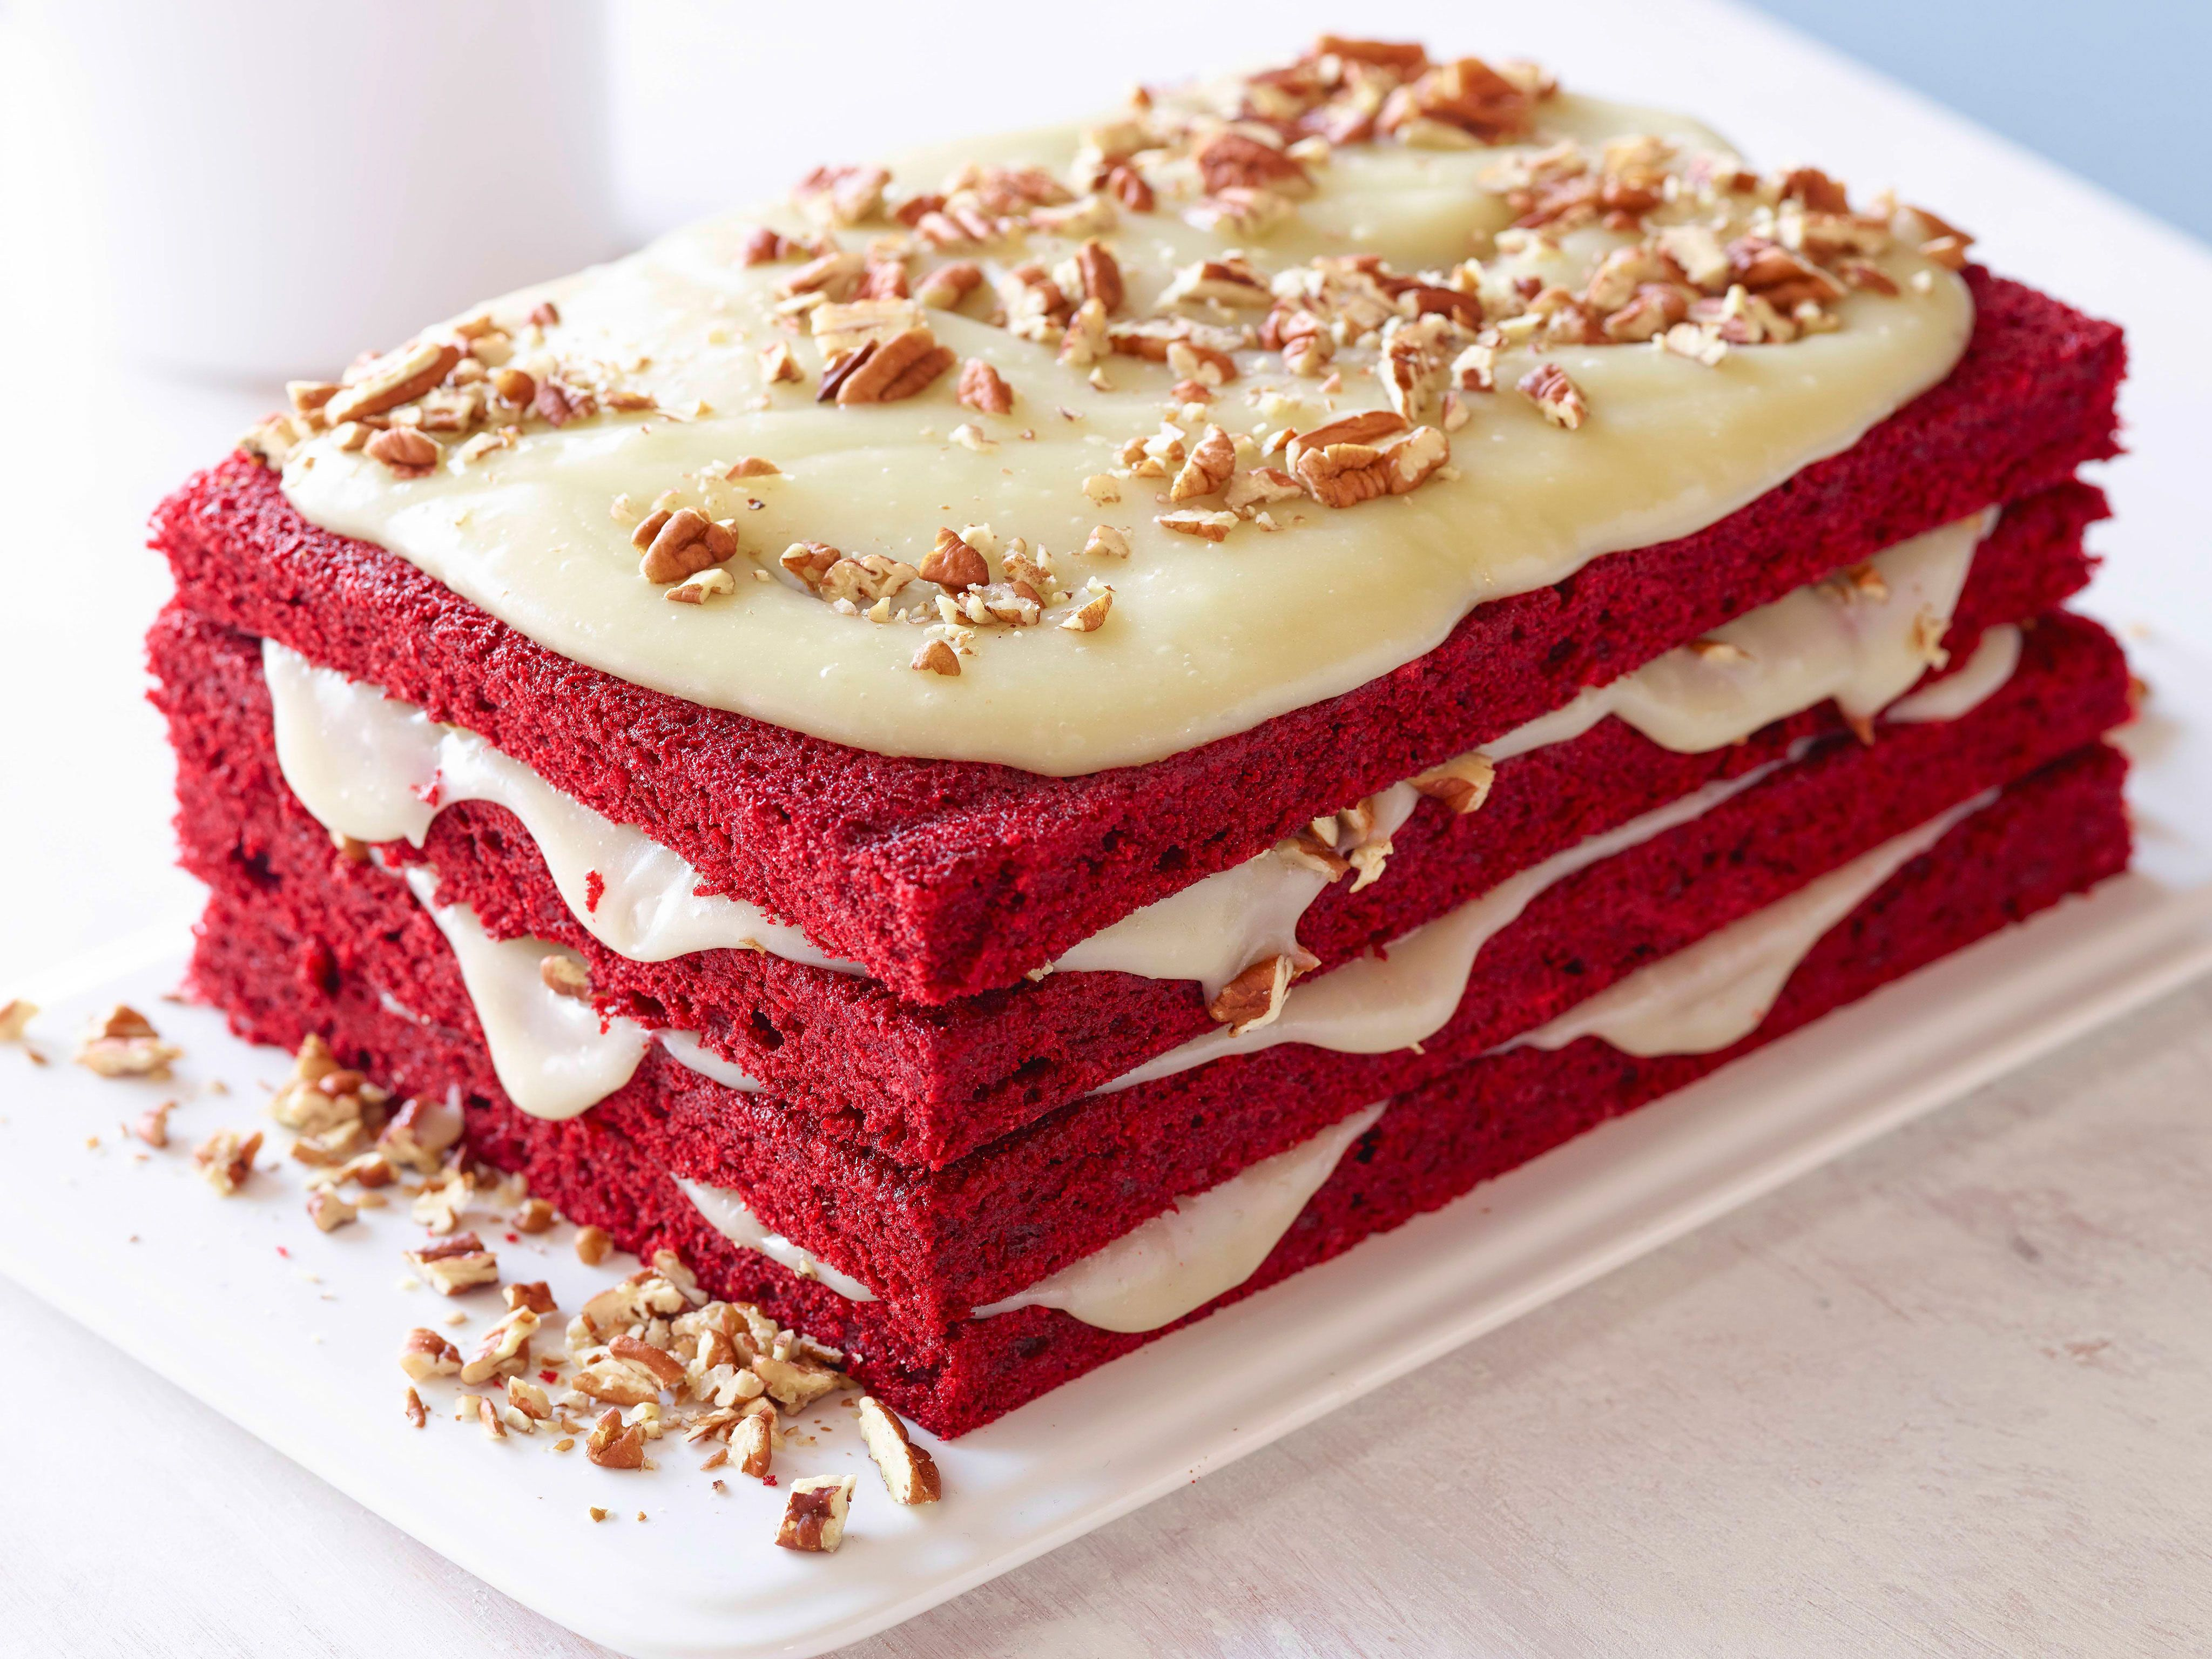 Grandmas Red Velvet Cake Recipe Sunny anderson Red velvet and